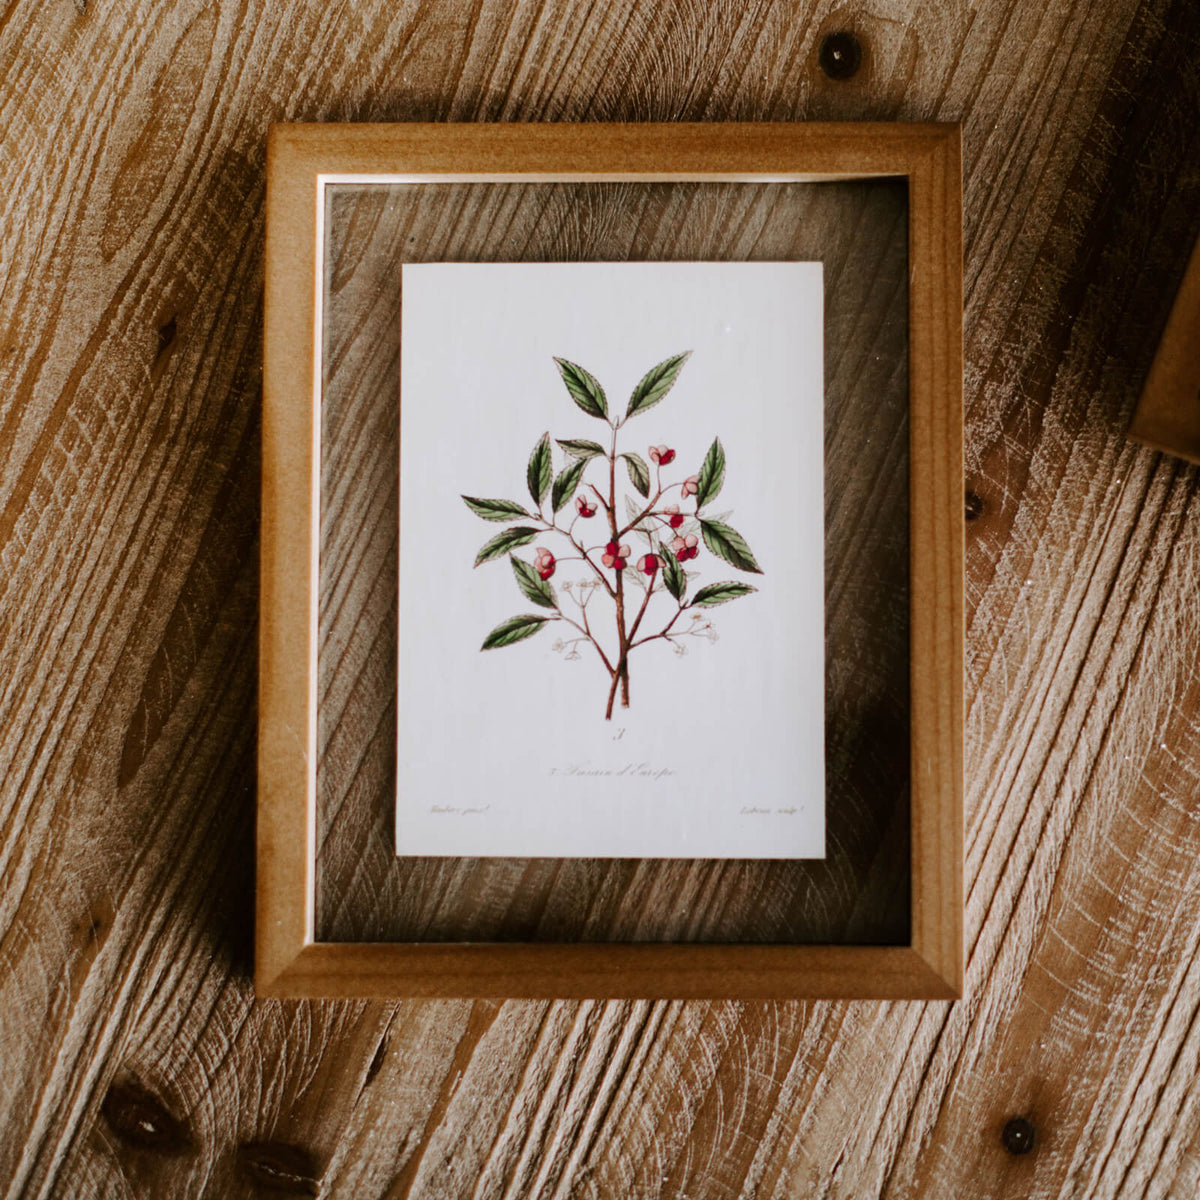 A framed botanical illustration of small red flowers and green leaves inside a wooden frame resting on a tabletop